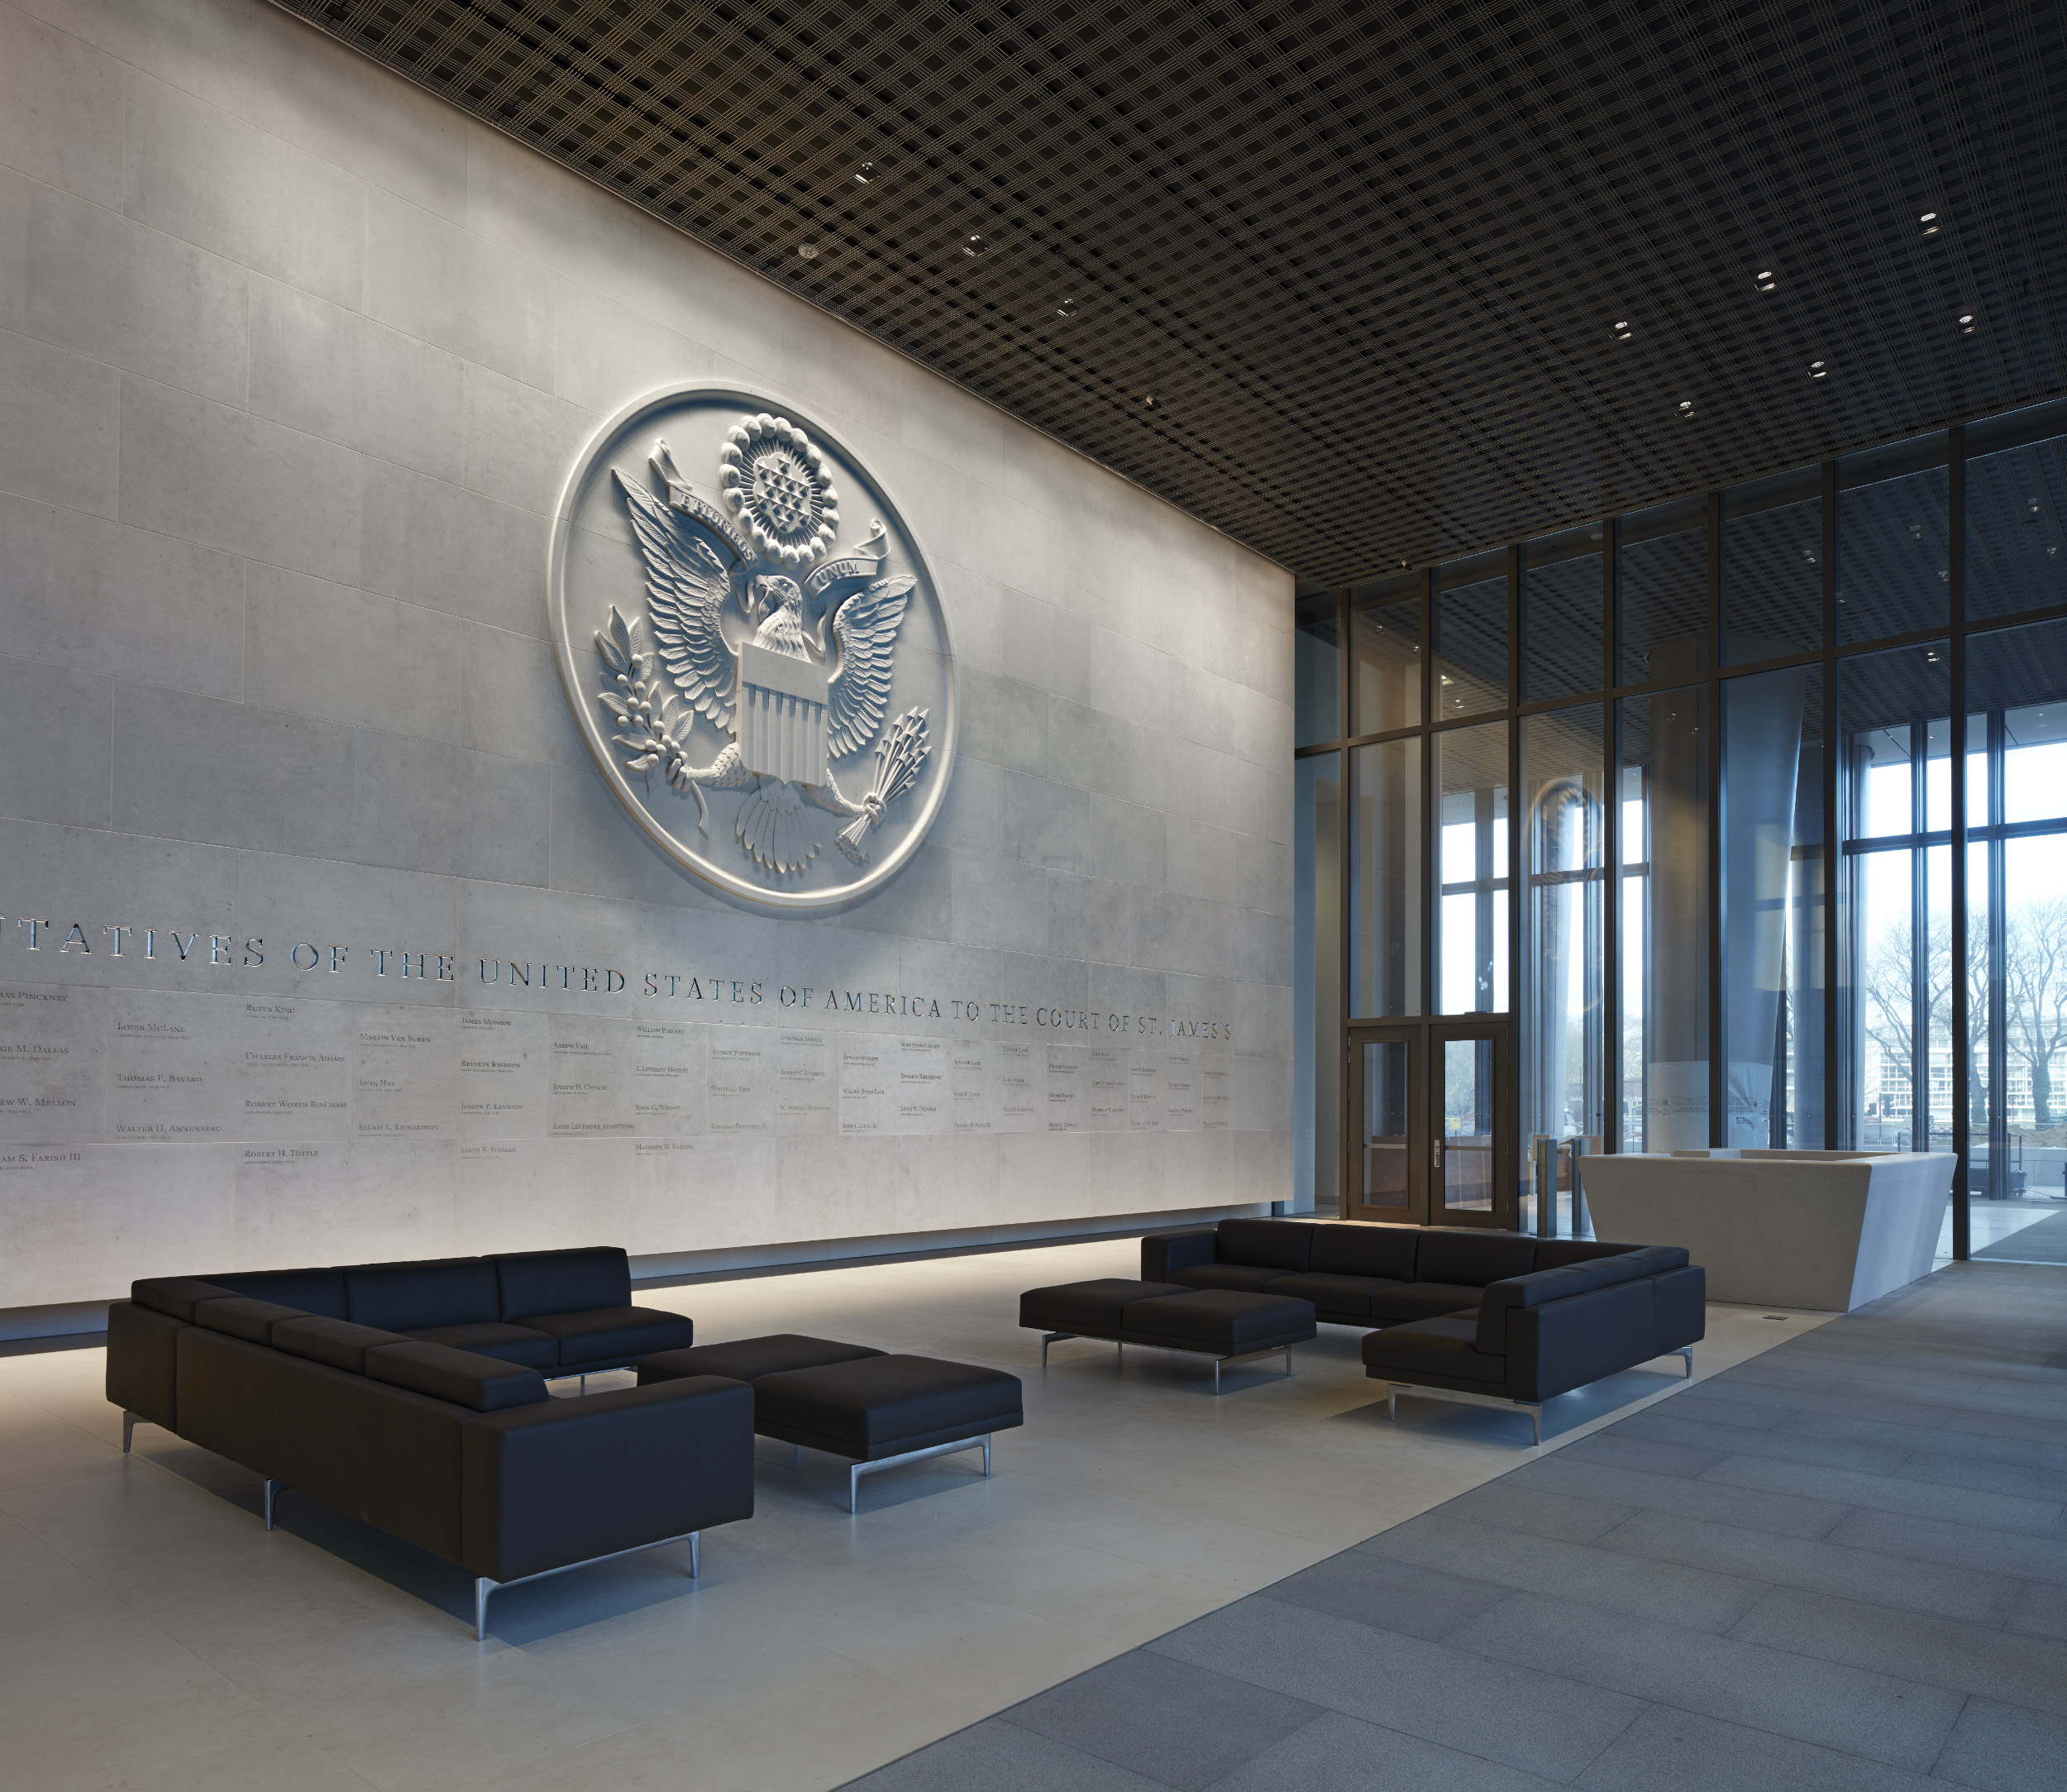 The main lobby of the American Embassy in London.